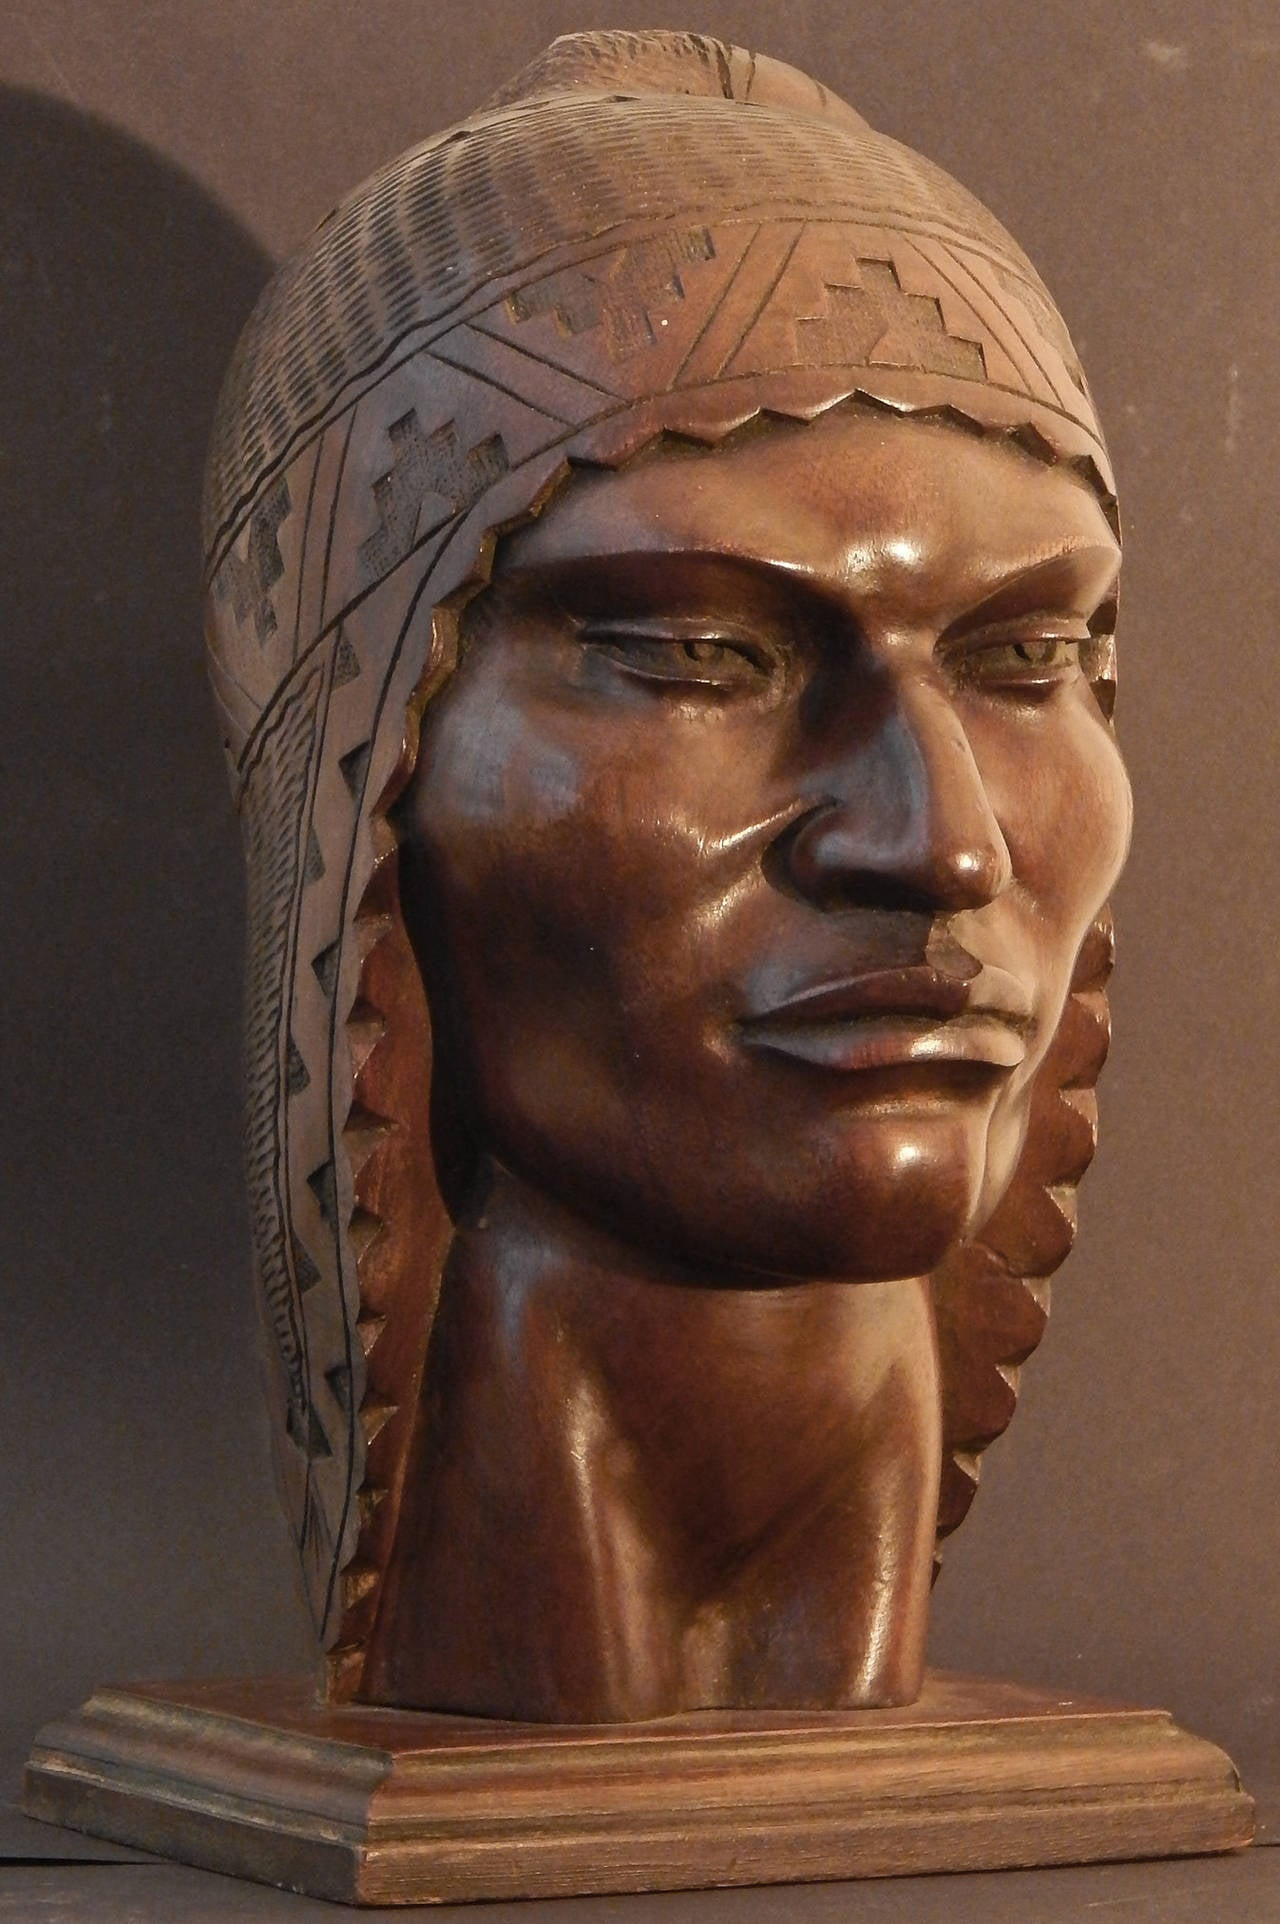 Superbly carved and visually striking, this life-size depiction of a Peruvian man in a traditional knitted headdress is a superb example of stylized Art Deco sculpture, as well as the fascination that American artists had in native cultures and